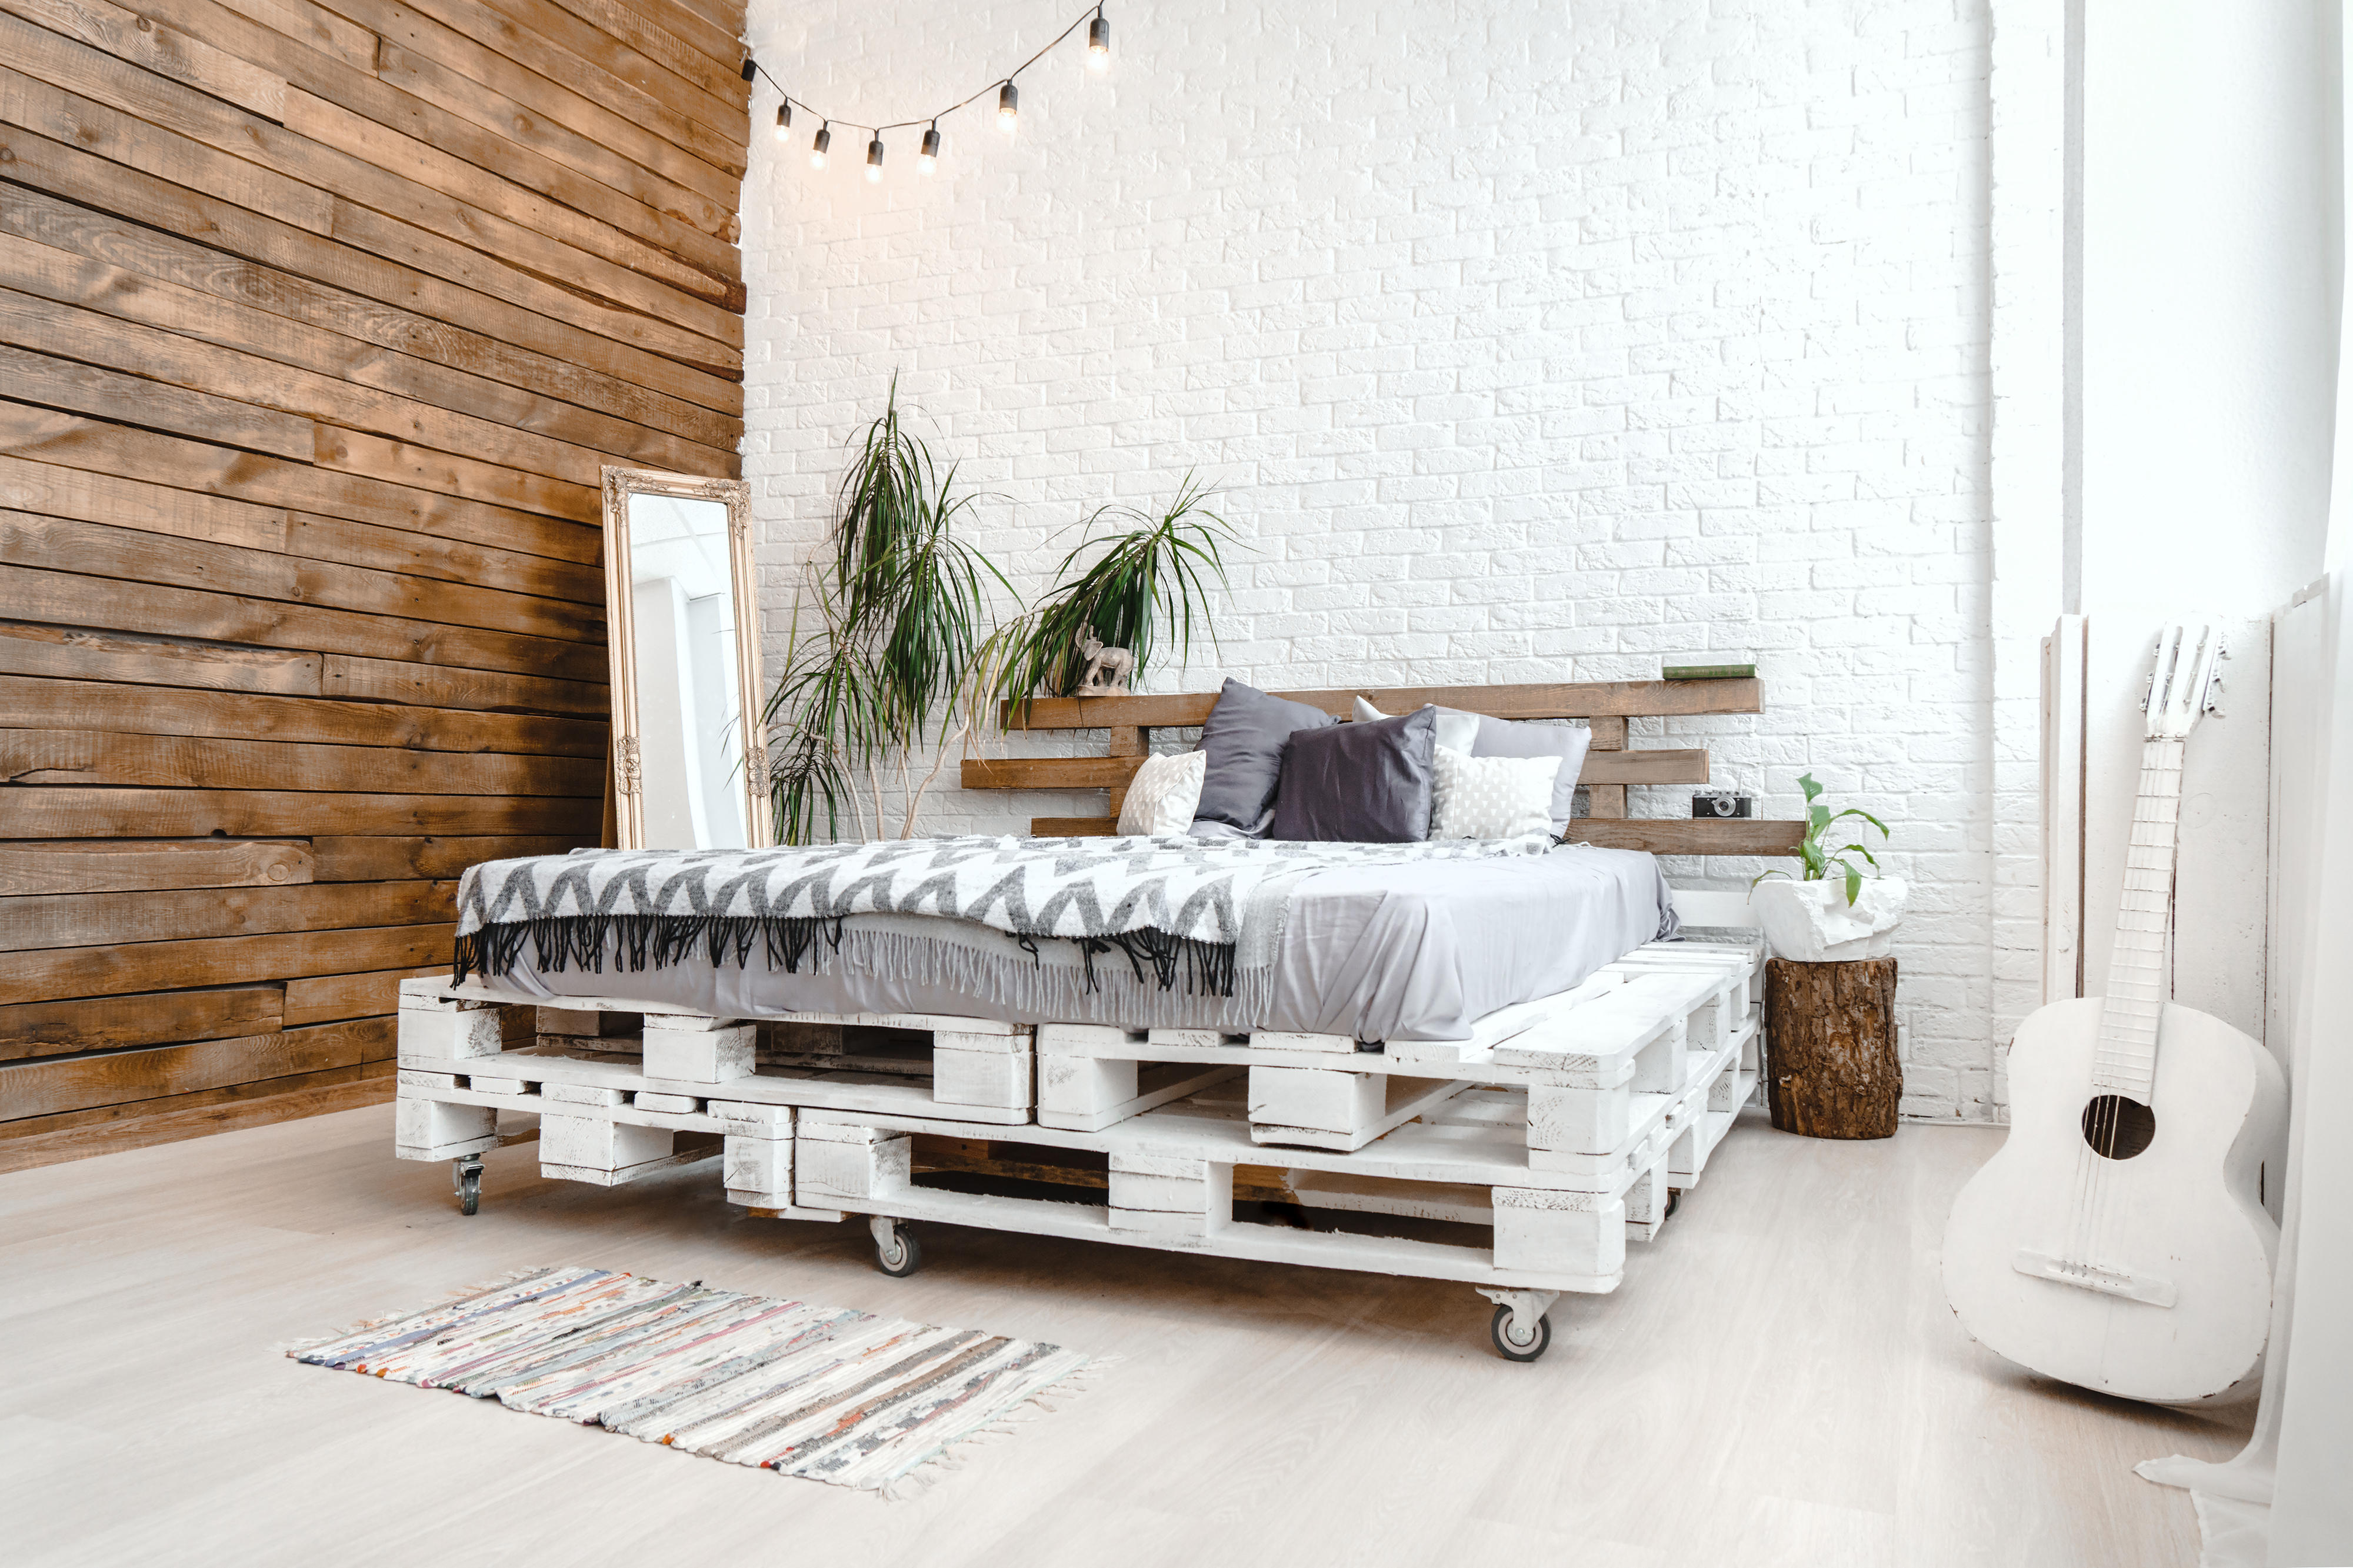 bett selber bauen so einfach geht s. Black Bedroom Furniture Sets. Home Design Ideas